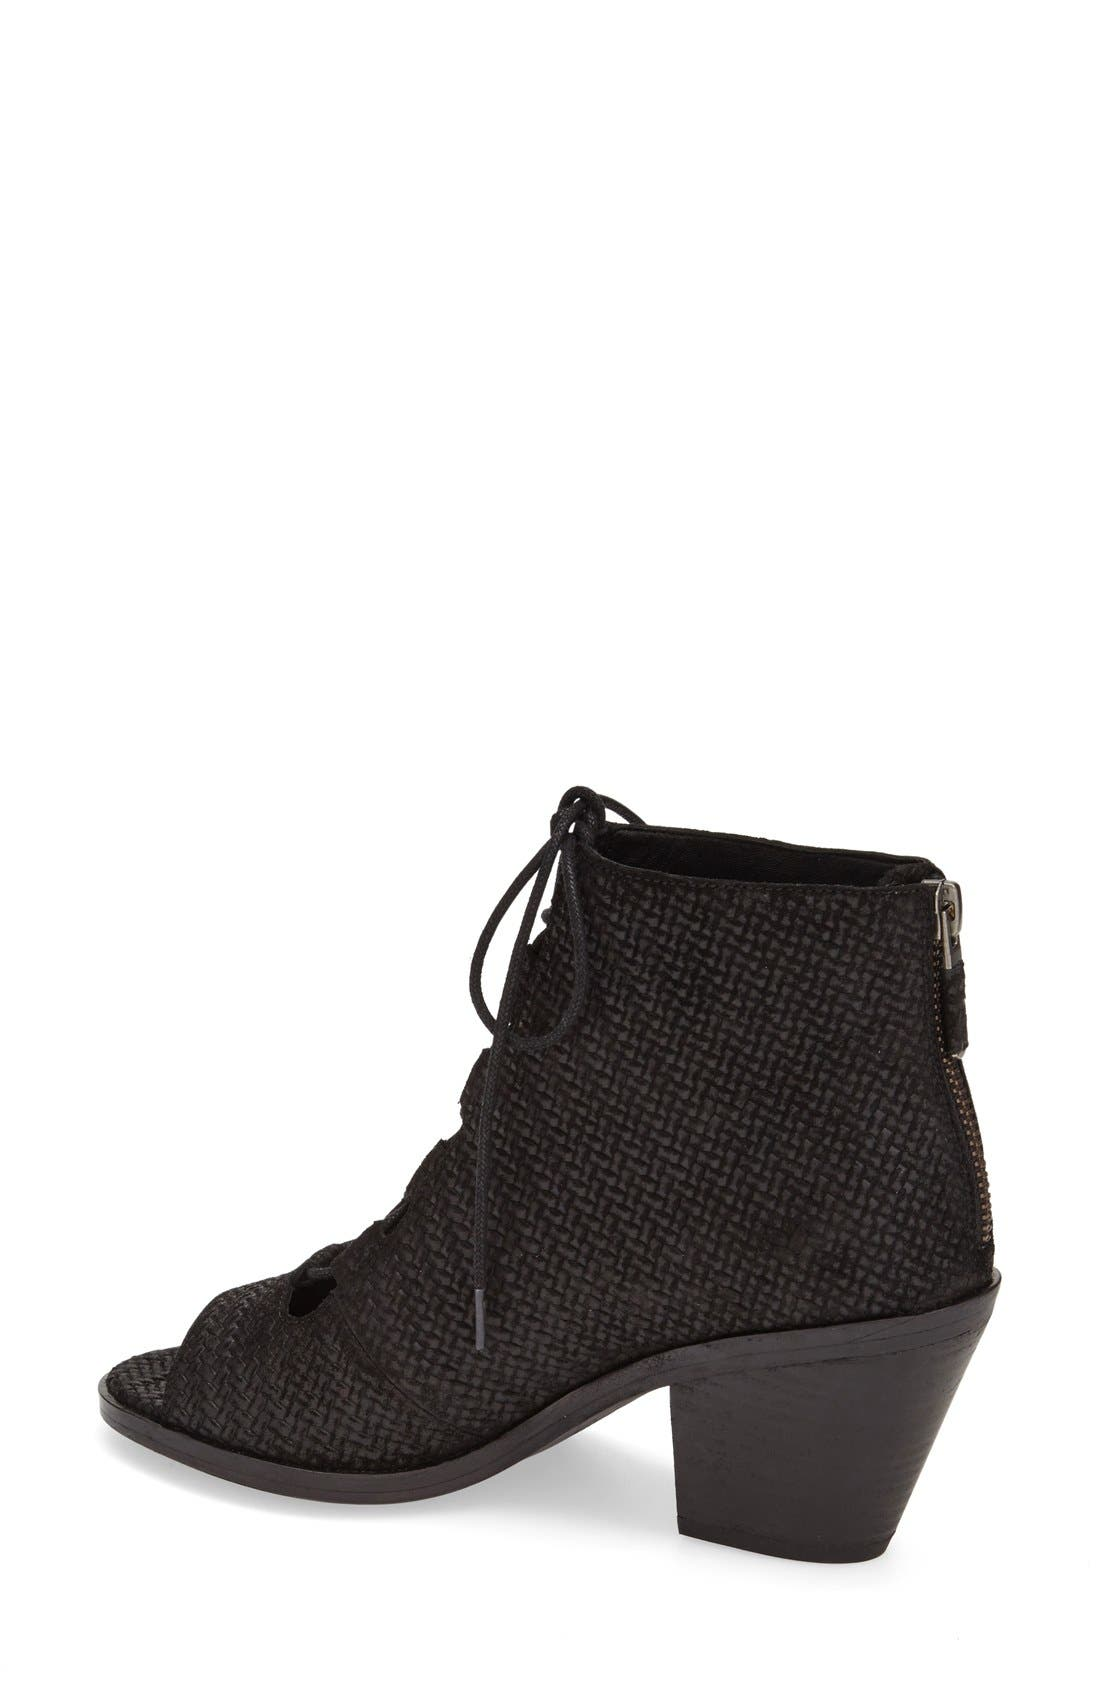 'Slew' Lace Up Bootie,                             Alternate thumbnail 3, color,                             001